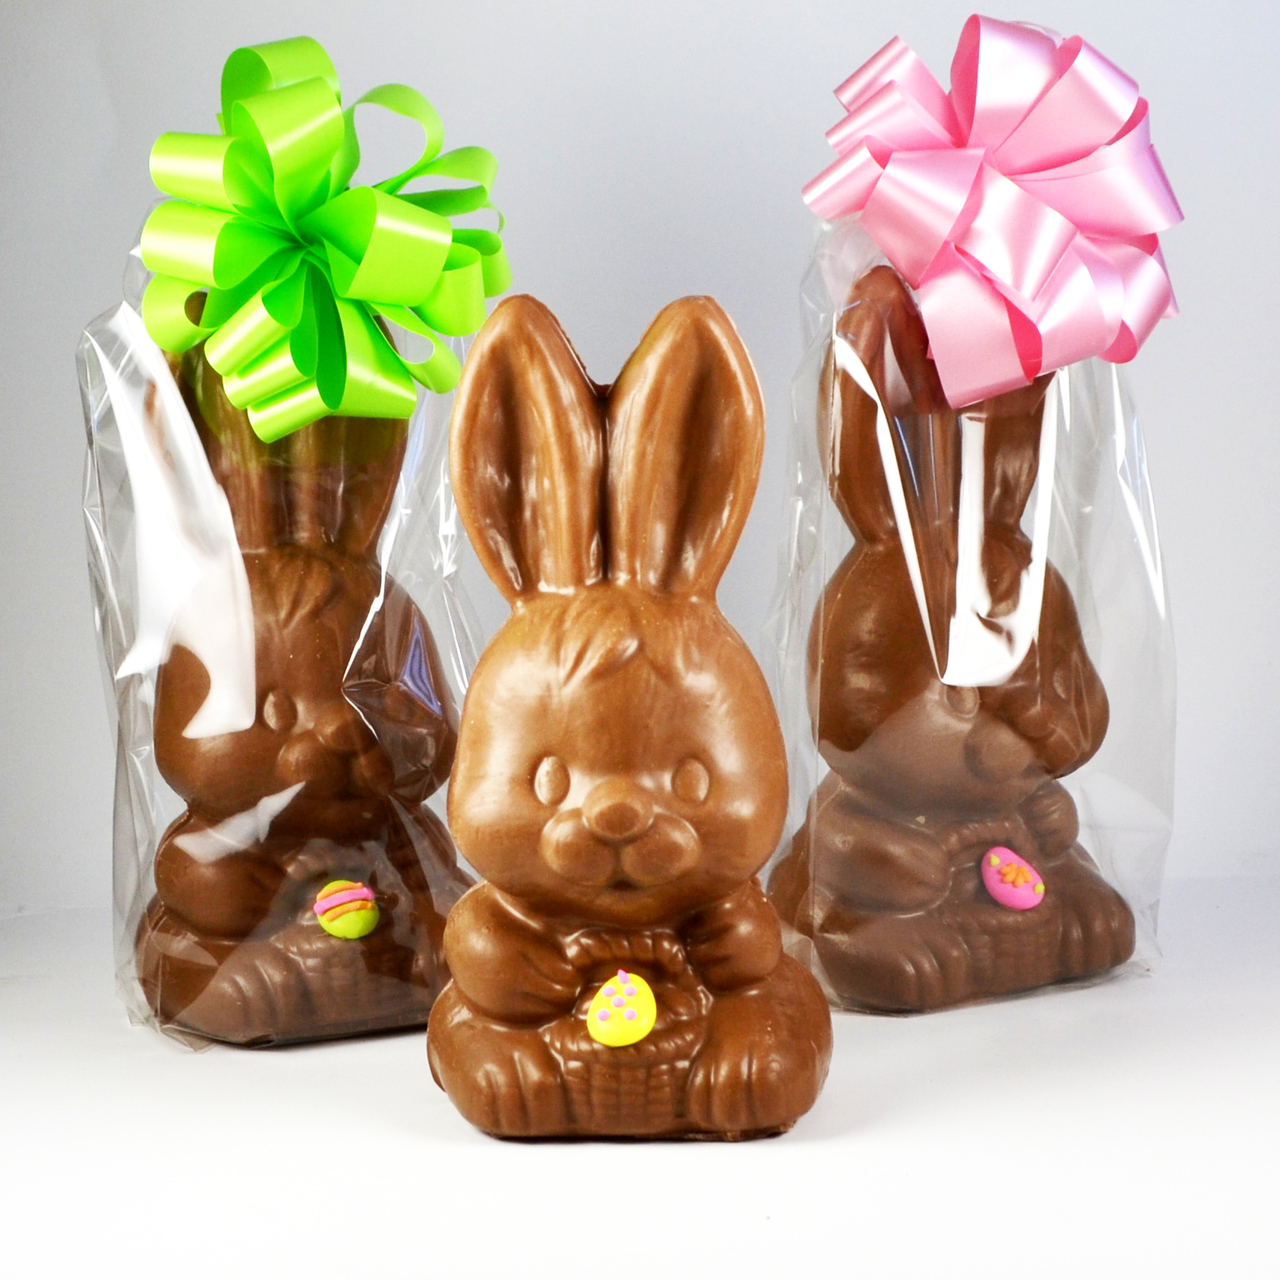 Big Head Chocolate Bunny - The Chocolatier